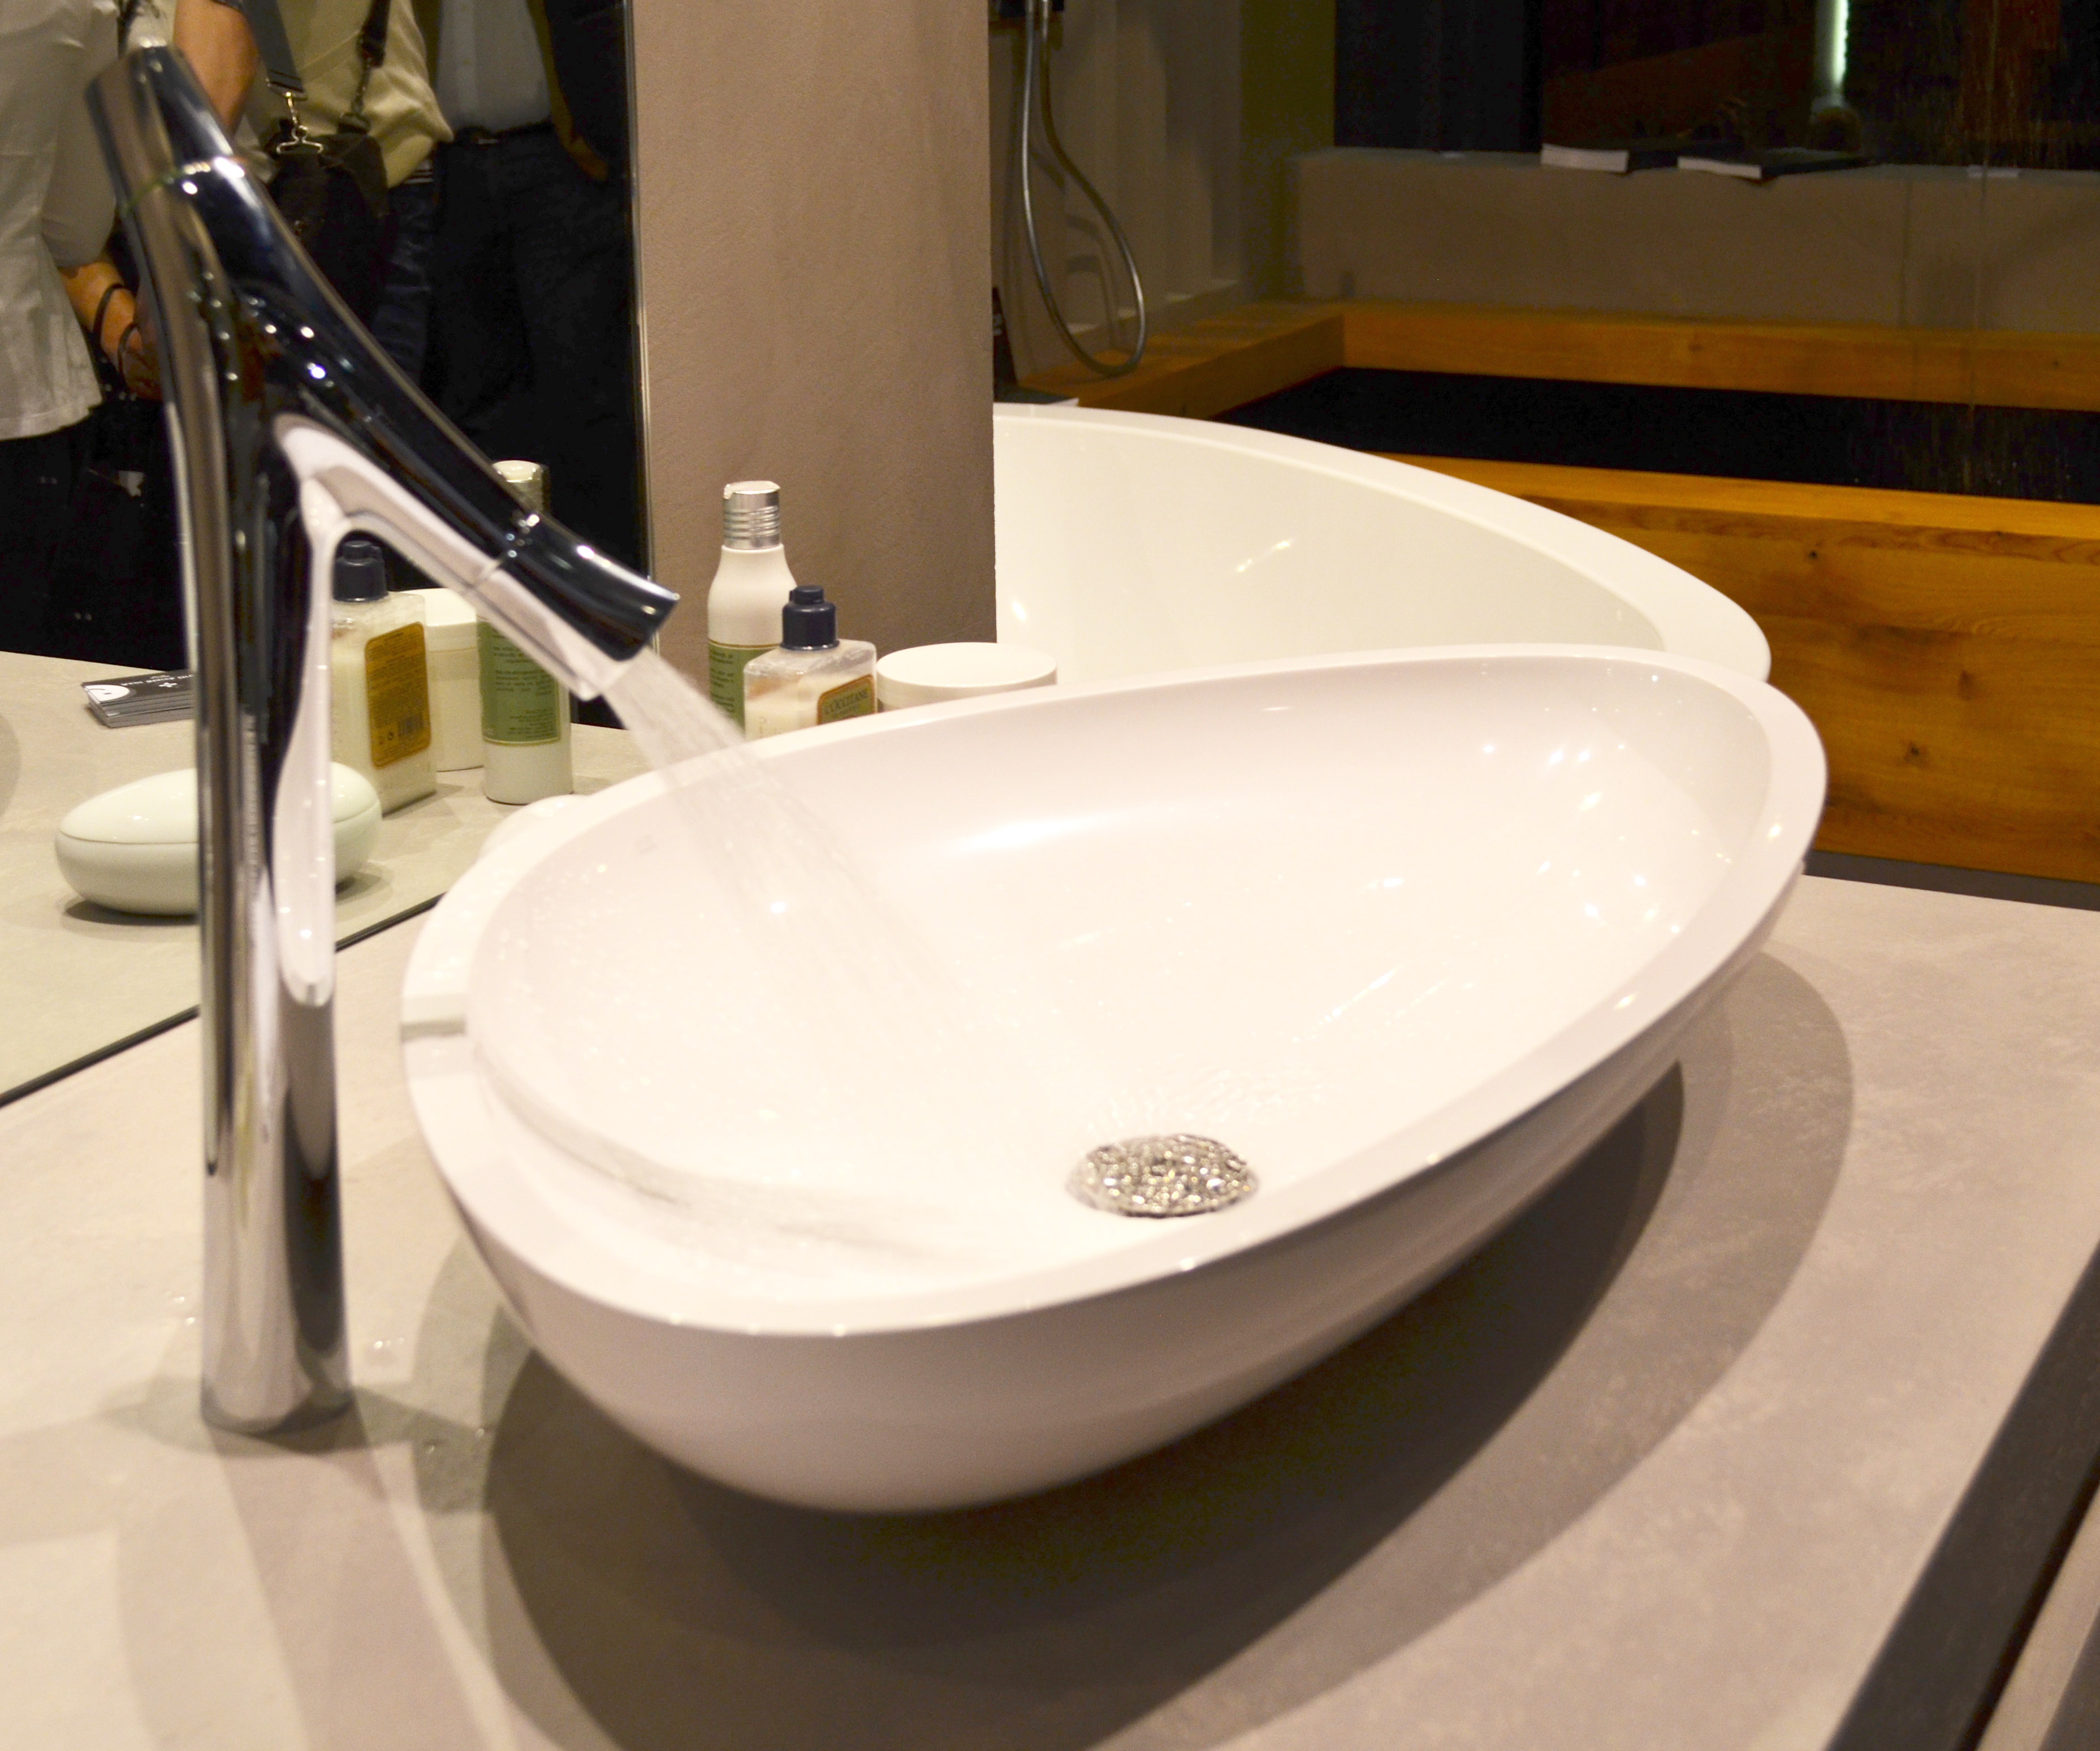 Contemporary bathroom faucet and sink